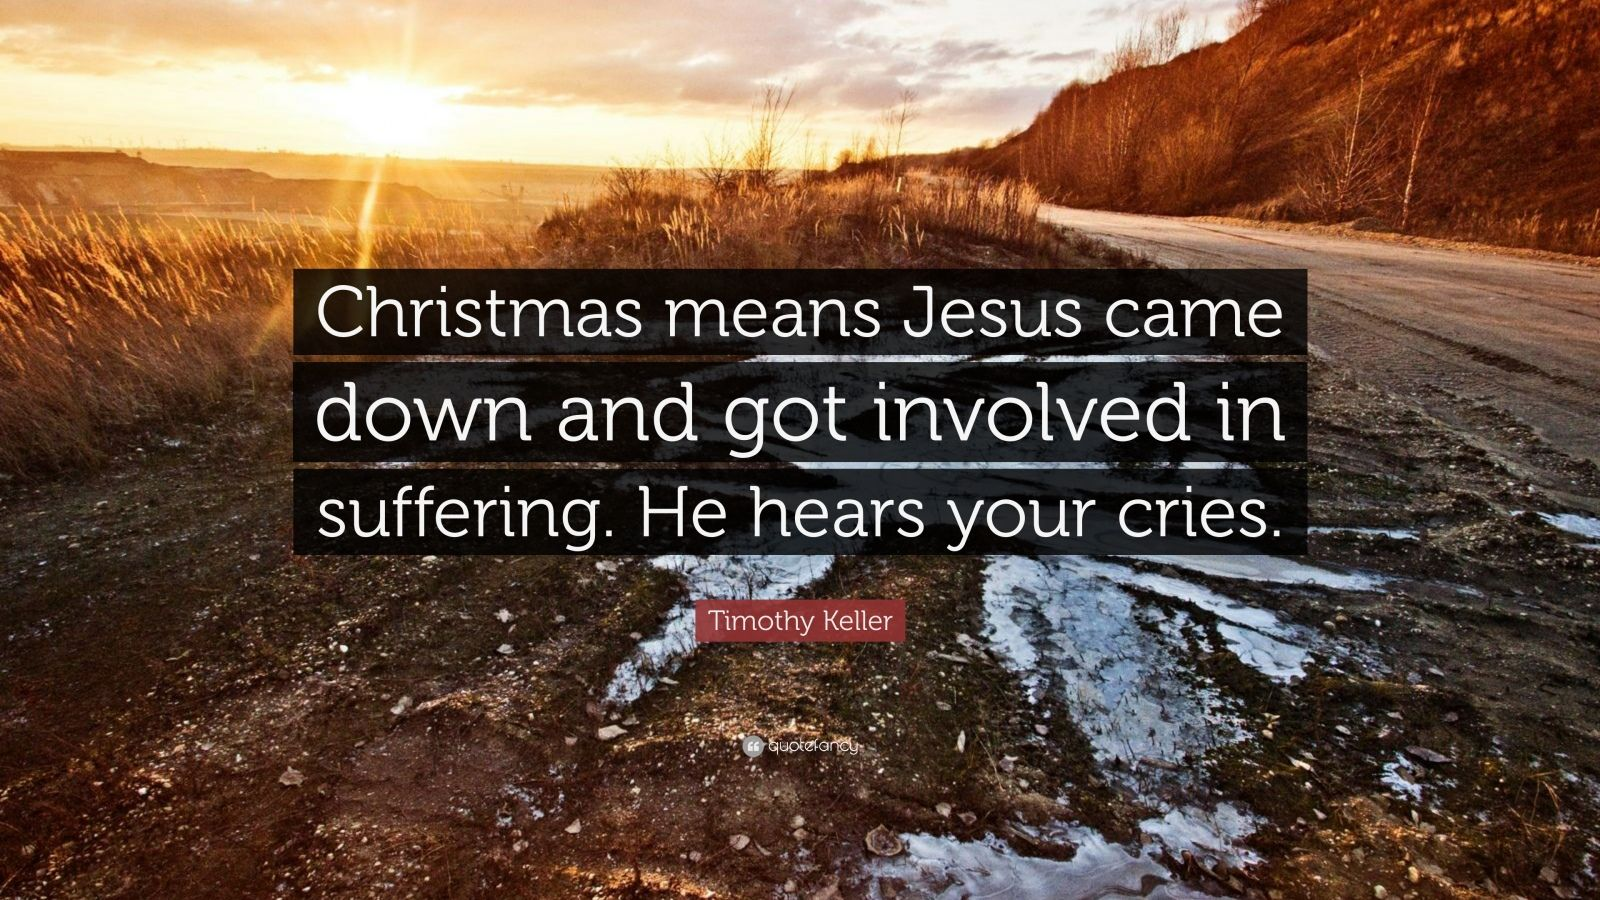 """Timothy Keller Quote: """"Christmas means Jesus came down and got involved in suffering. He hears your cries."""""""